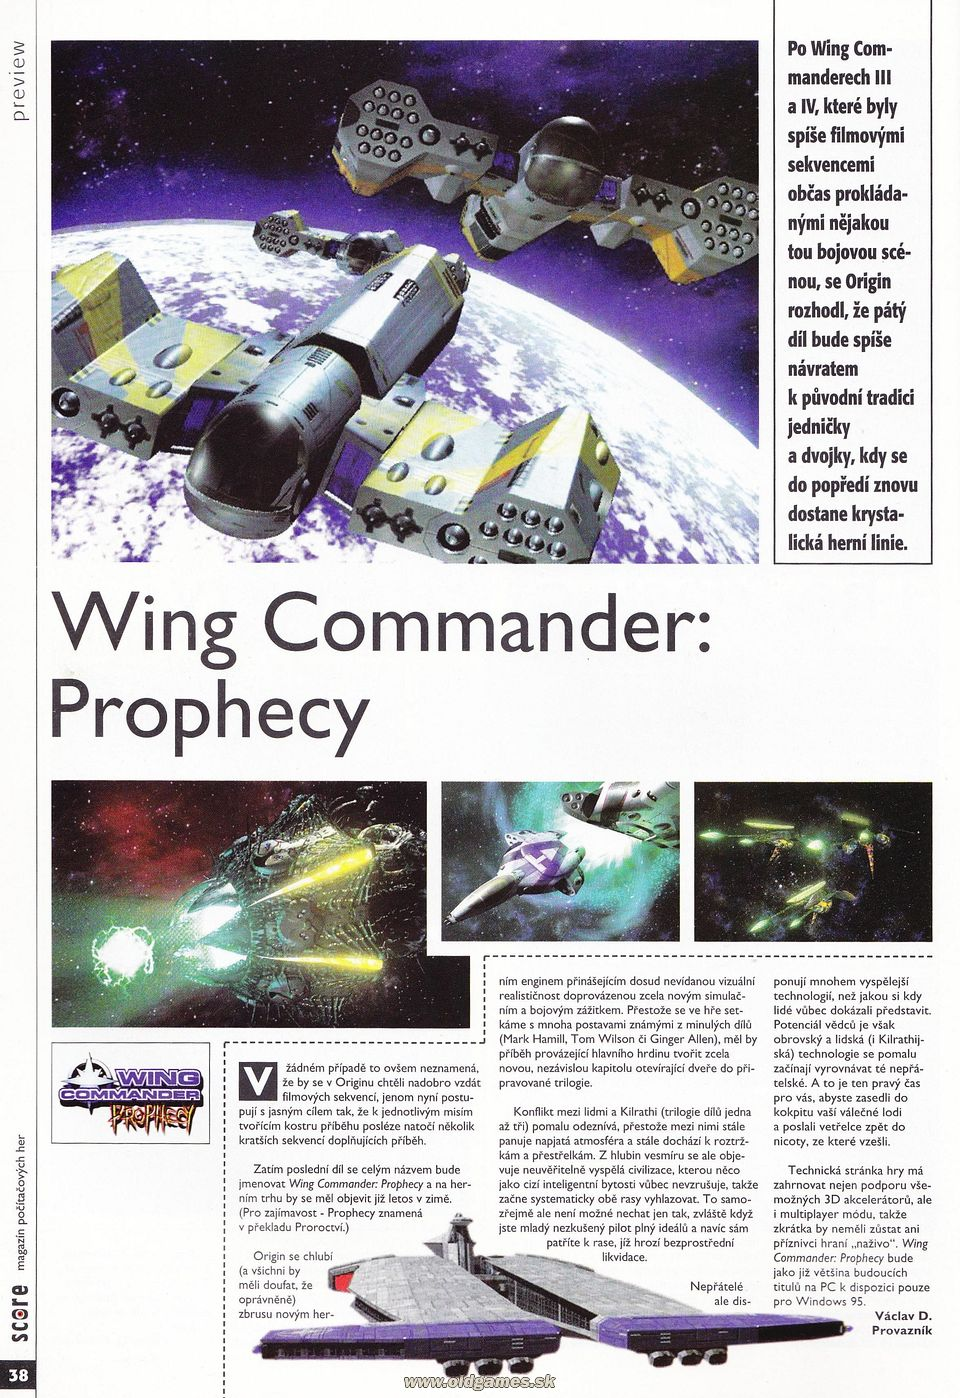 Preview: Wing Commander Prophecy